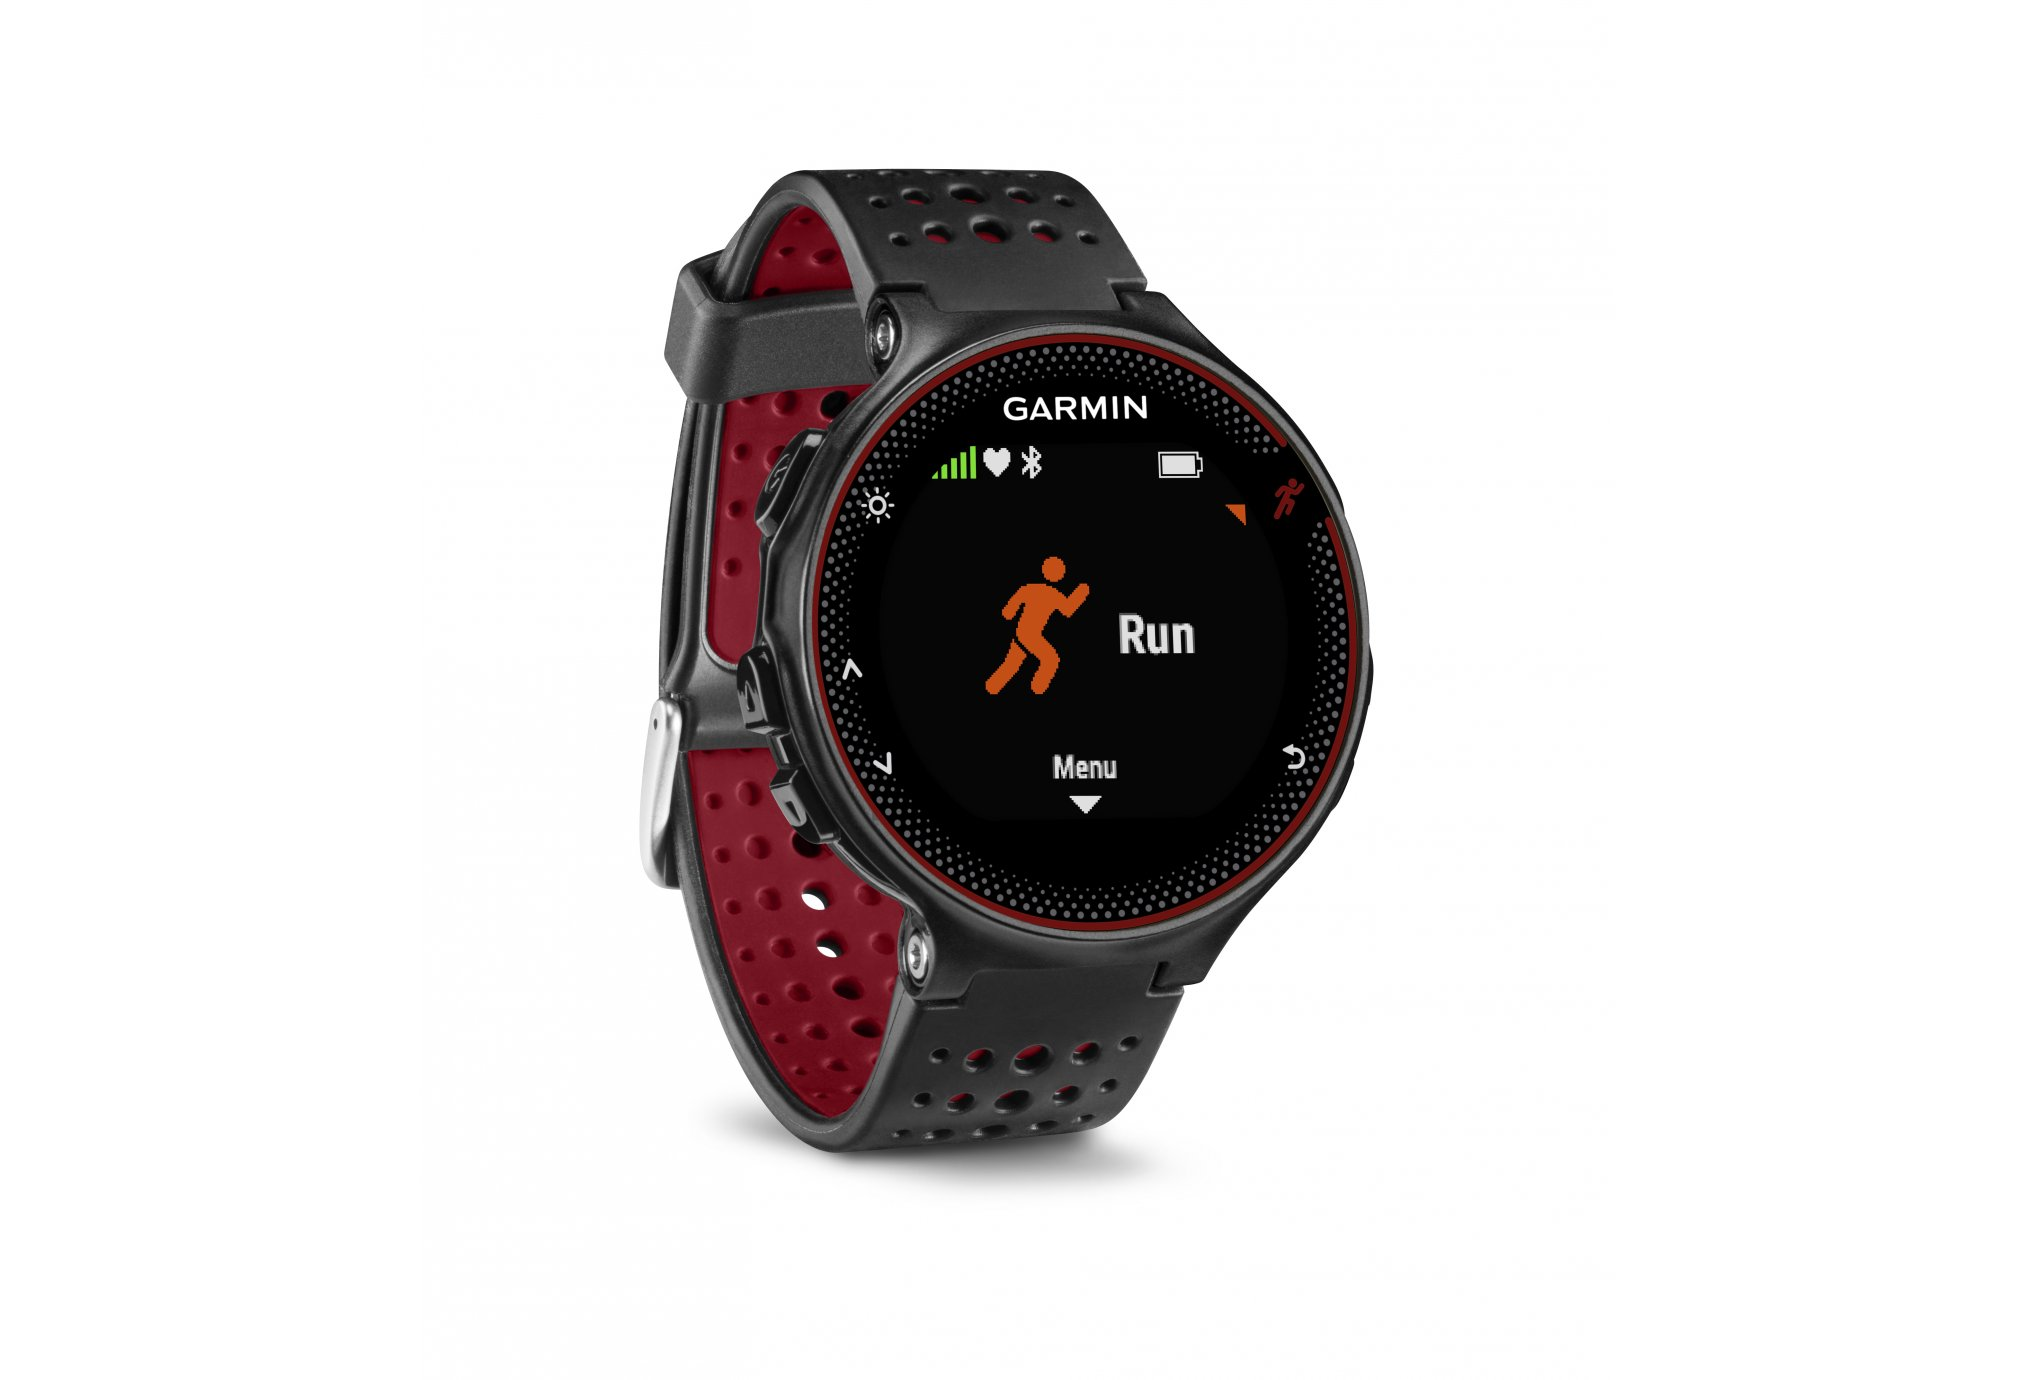 garmin-forerunner-235-electronique-103692-1-fz